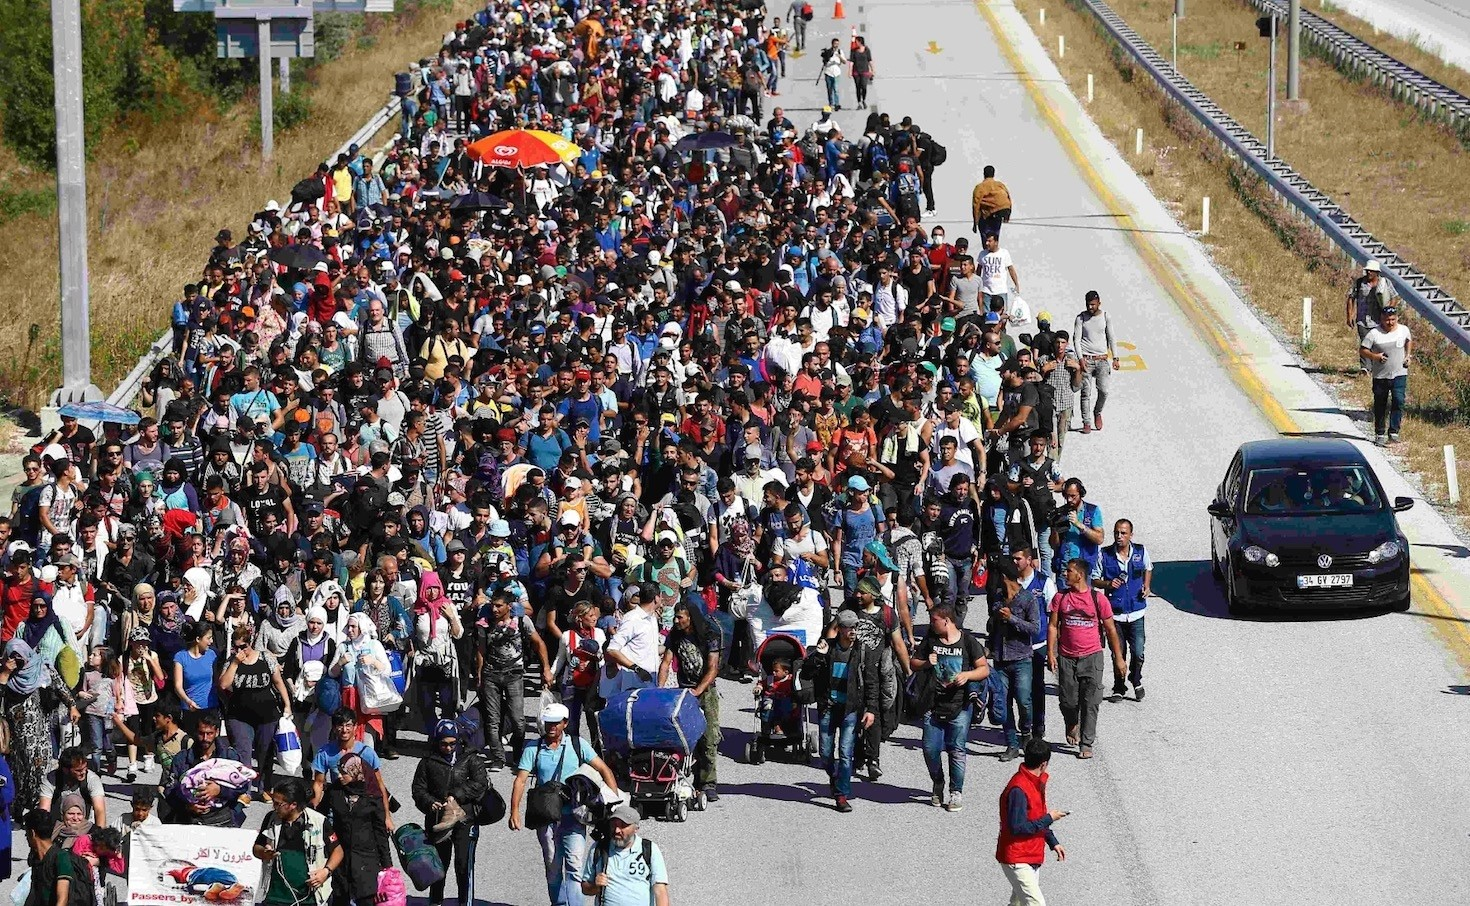 Three years after this mass walk by Syrian migrants to Greece from Turkey, Greece is seeing a renewed rise in the number of migrants using the land border for crossings.